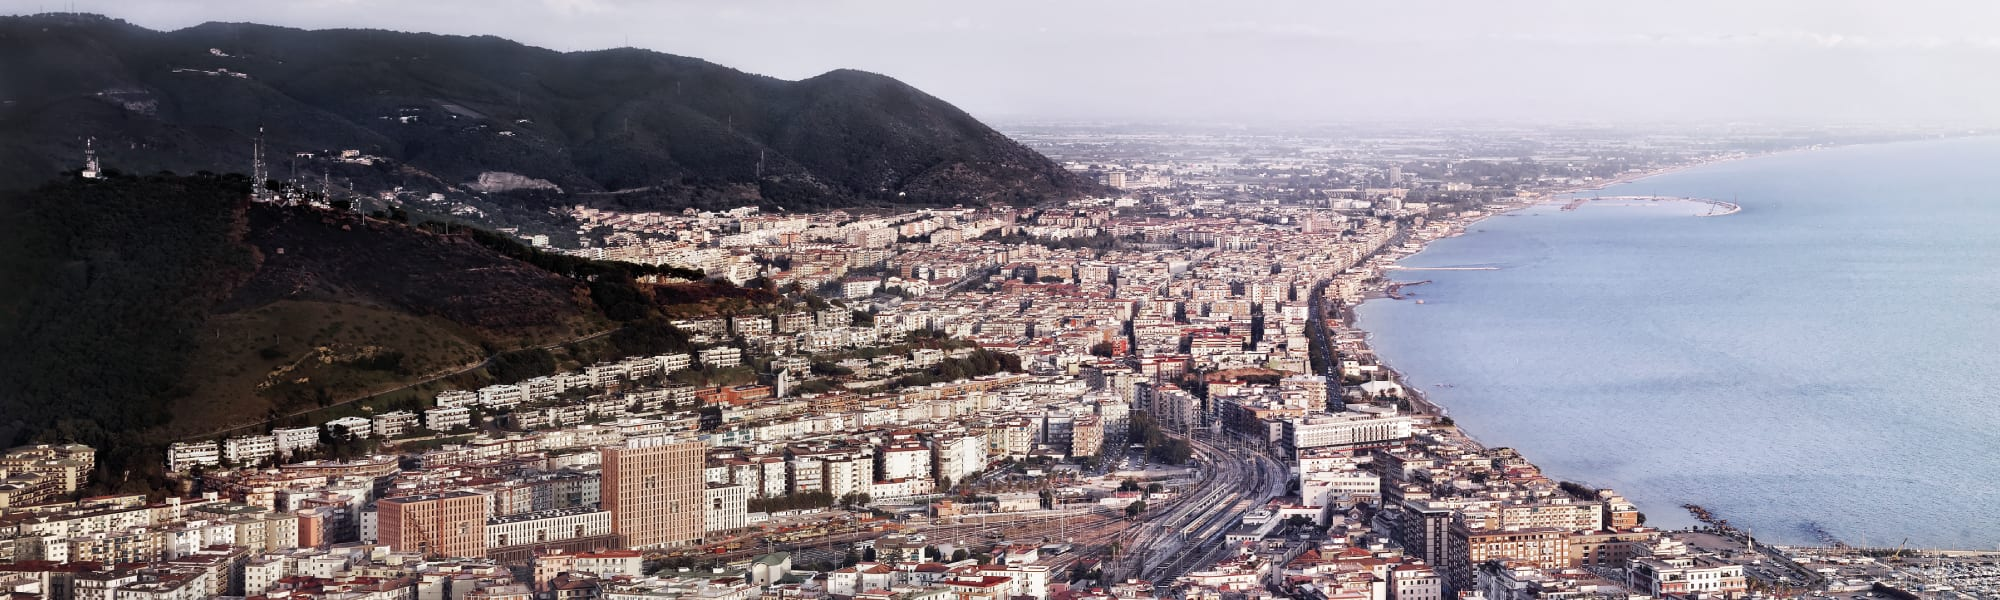 salerno city